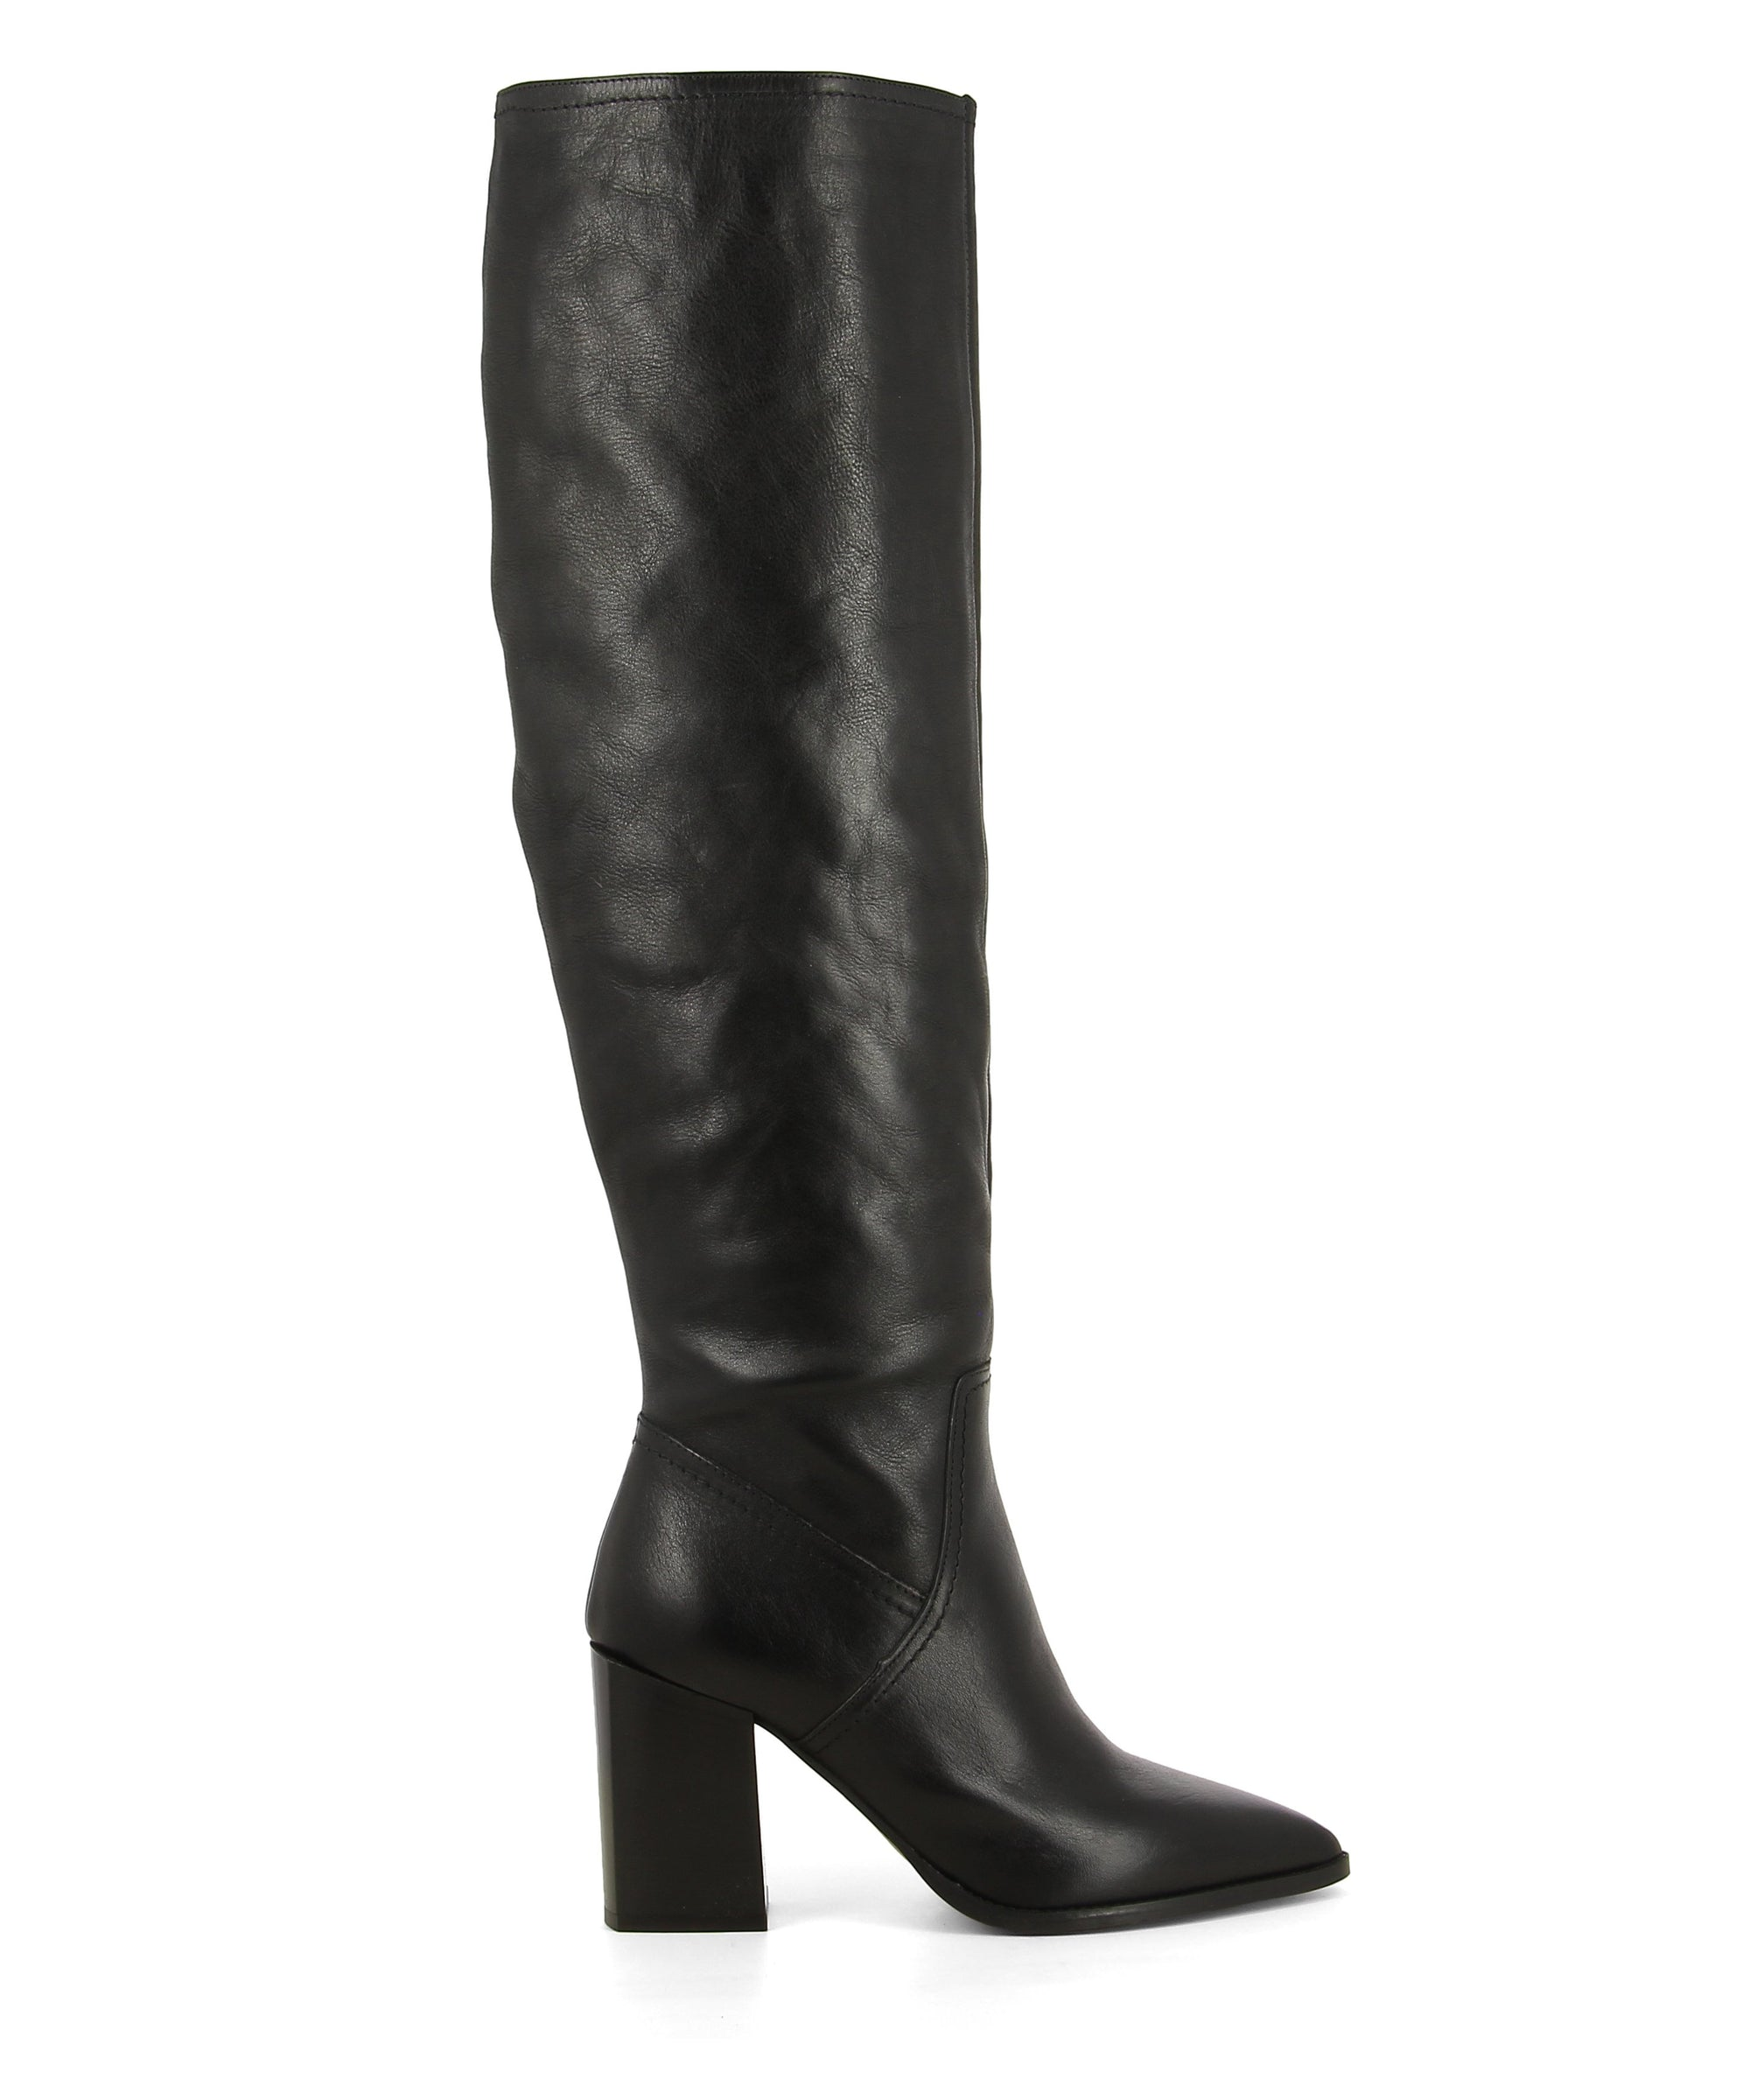 A black leather knee high boot featuring a zipper fastening, a high block heel and a pointed toe. Made by Christian Di Riccio. This style runs true to size.